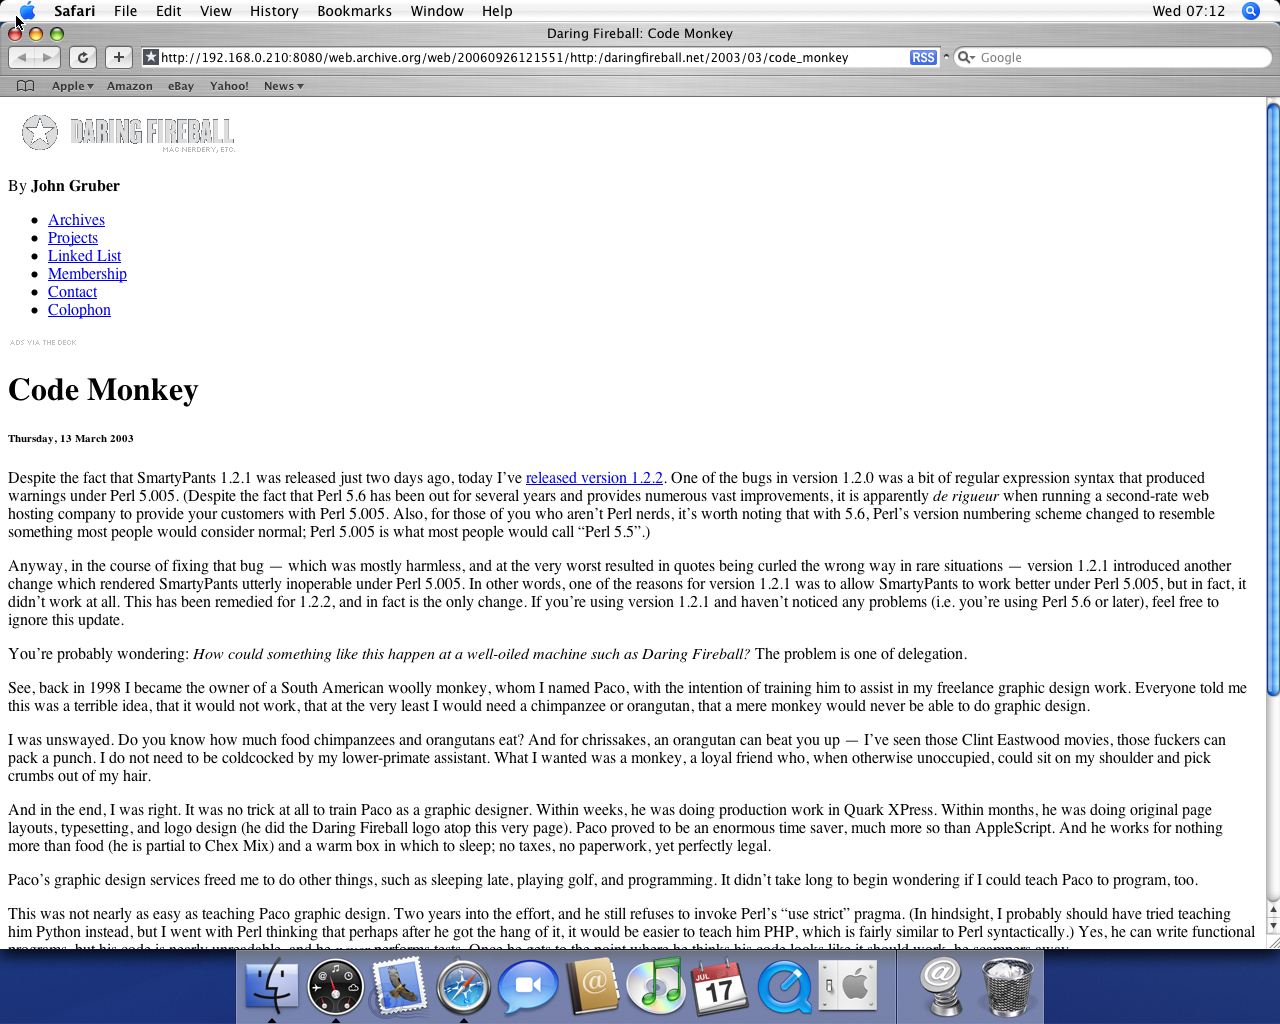 OS X 10.4 PPC with Safari 2.0 displaying a page from Daring Fireball archived at September 26, 2006 at 12:15:51